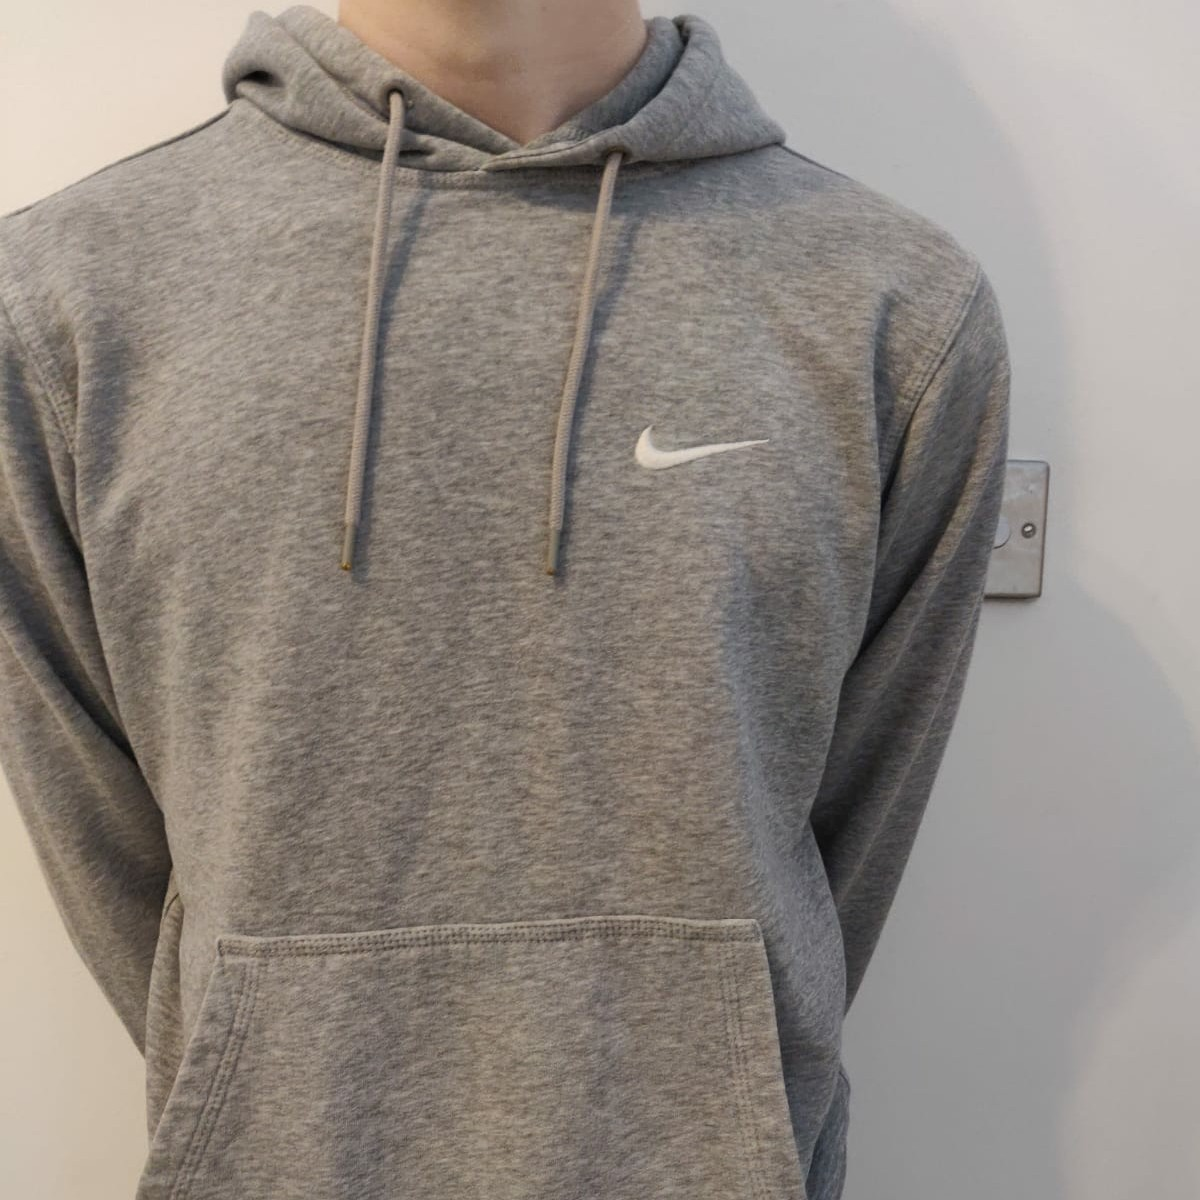 grey nike hoodie. perfect condition. size mens depop super